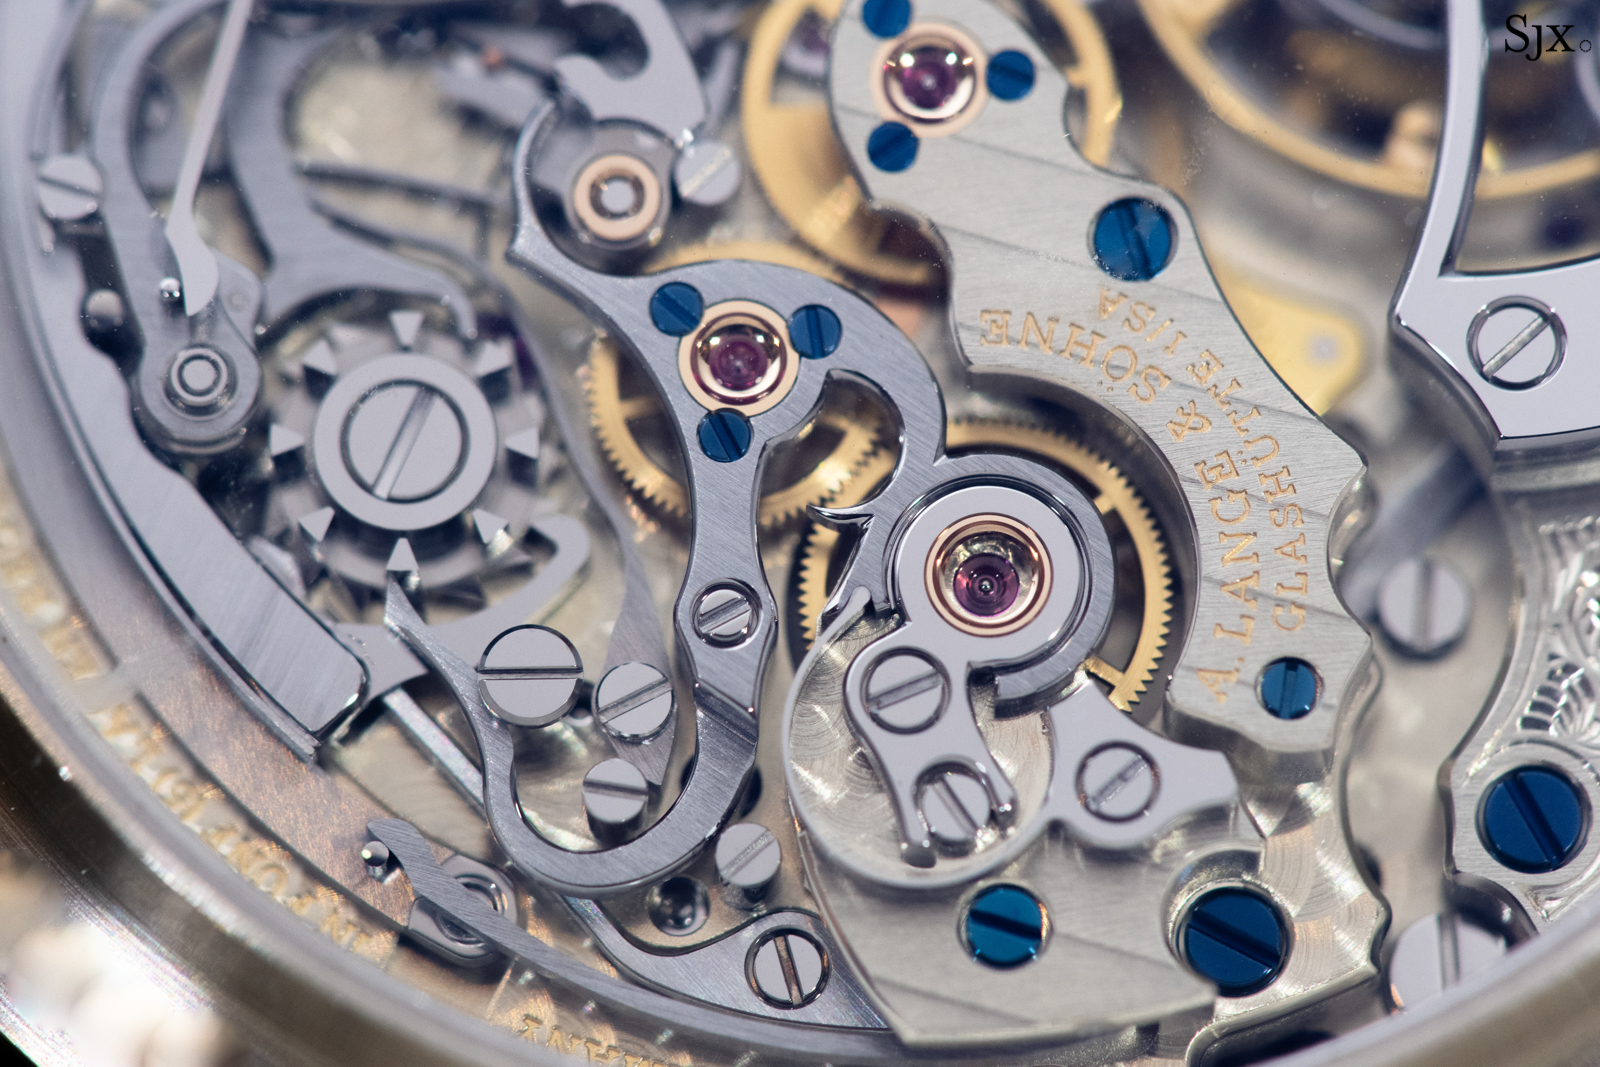 Closeup of the iconic design of the lateral clutch and column wheel. Note the redesigned chronograph bridge to accommodate the tourbillon.